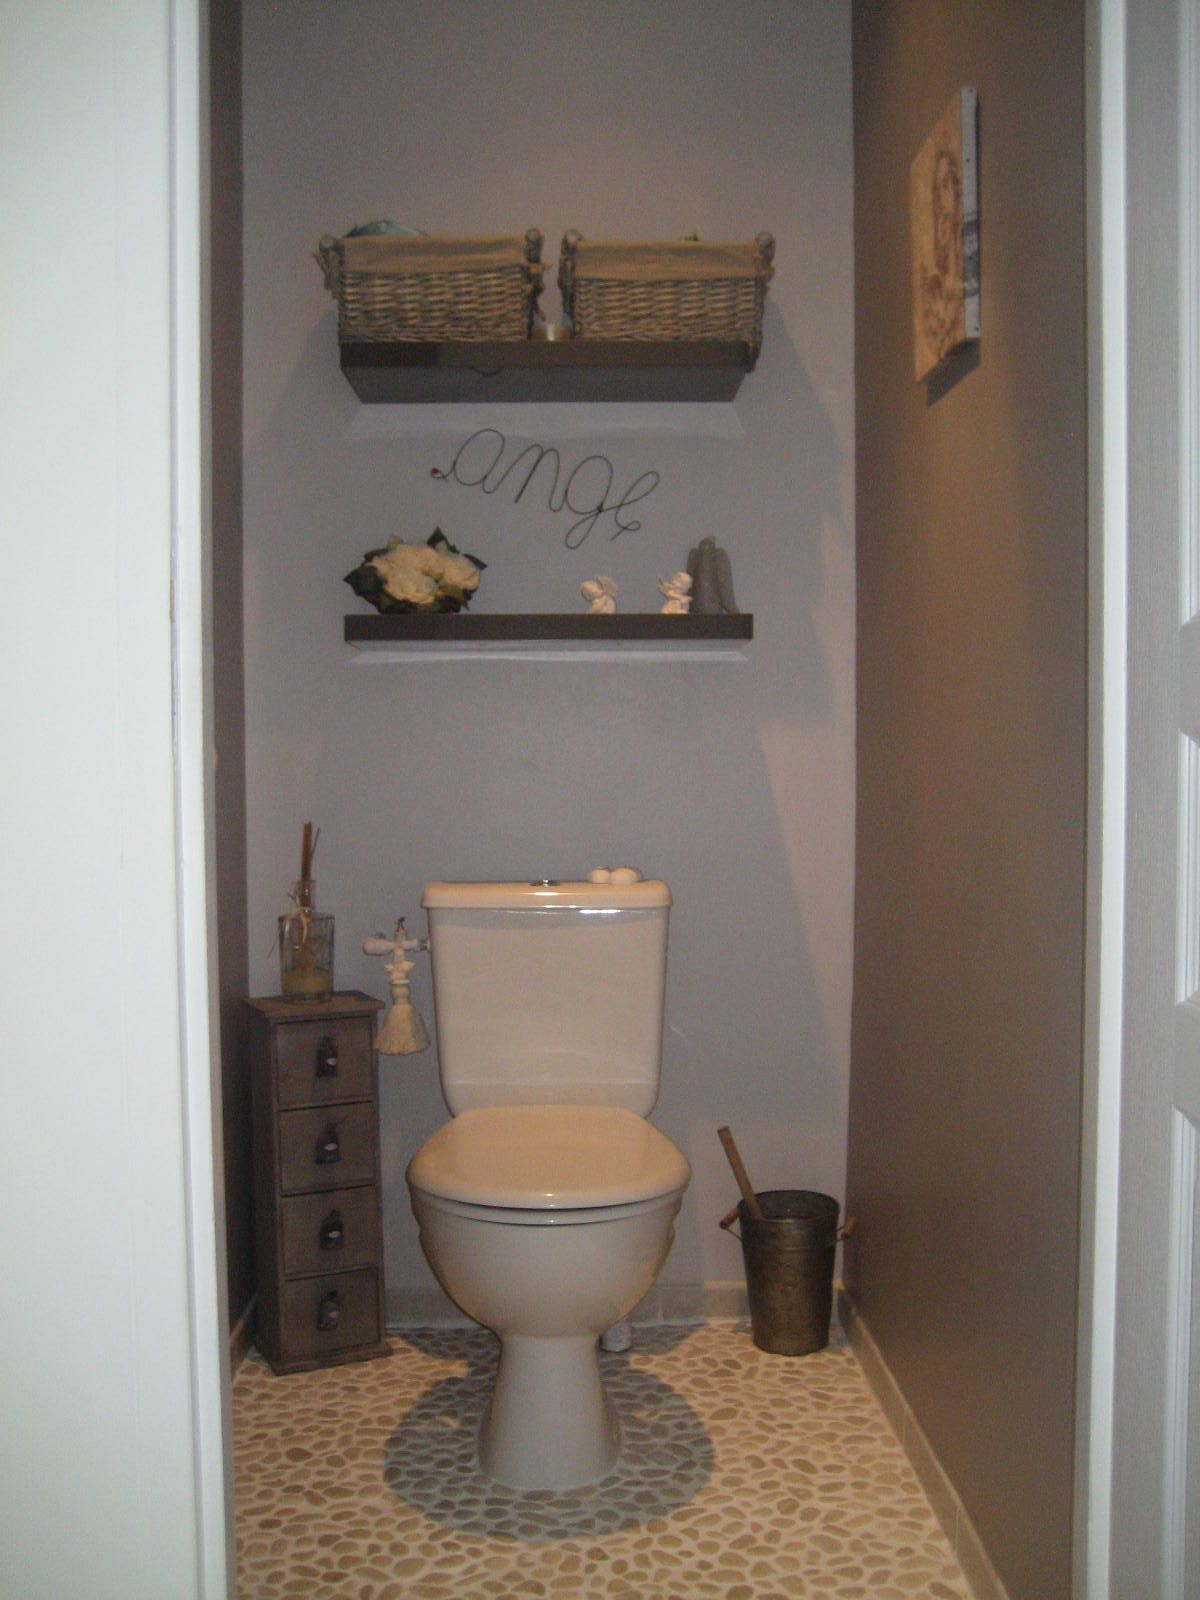 Toilette deco google search nouvelle maison pinterest d co toilettes - Idees deco toilettes ...